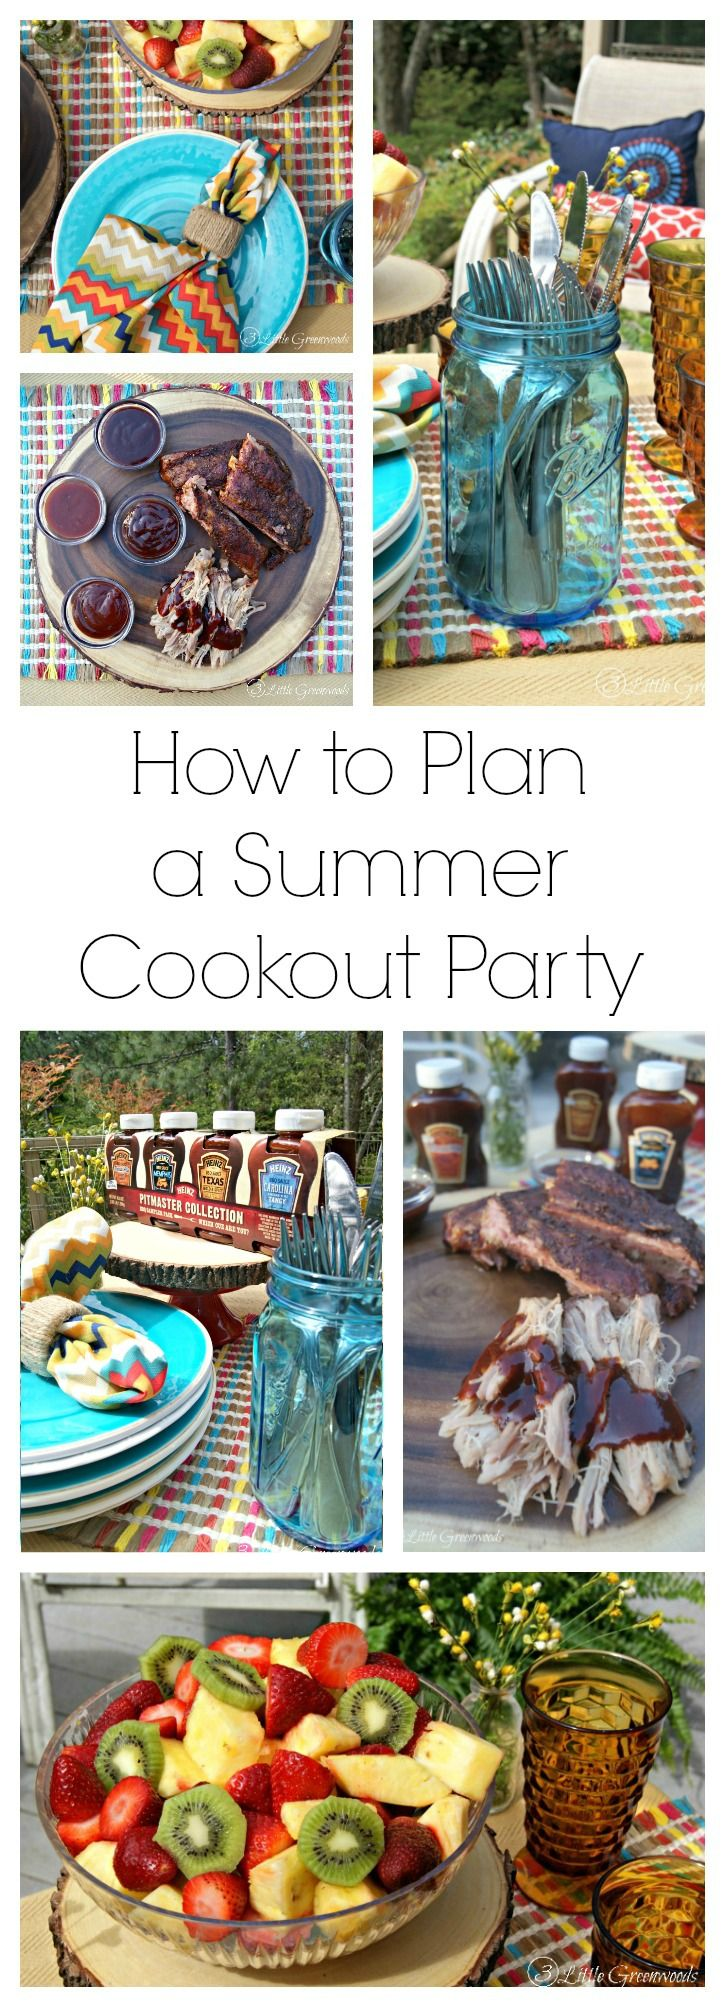 Sharing is Caring! Celebrate Memorial Day, Fourth of July, and summertime! Here's how to throw a Summer Cookout Party! Summer tablescape ideas, cookout menu, and a Southern smoked bbq recipe! // 3 Little Greenwoods Sharing is Caring!